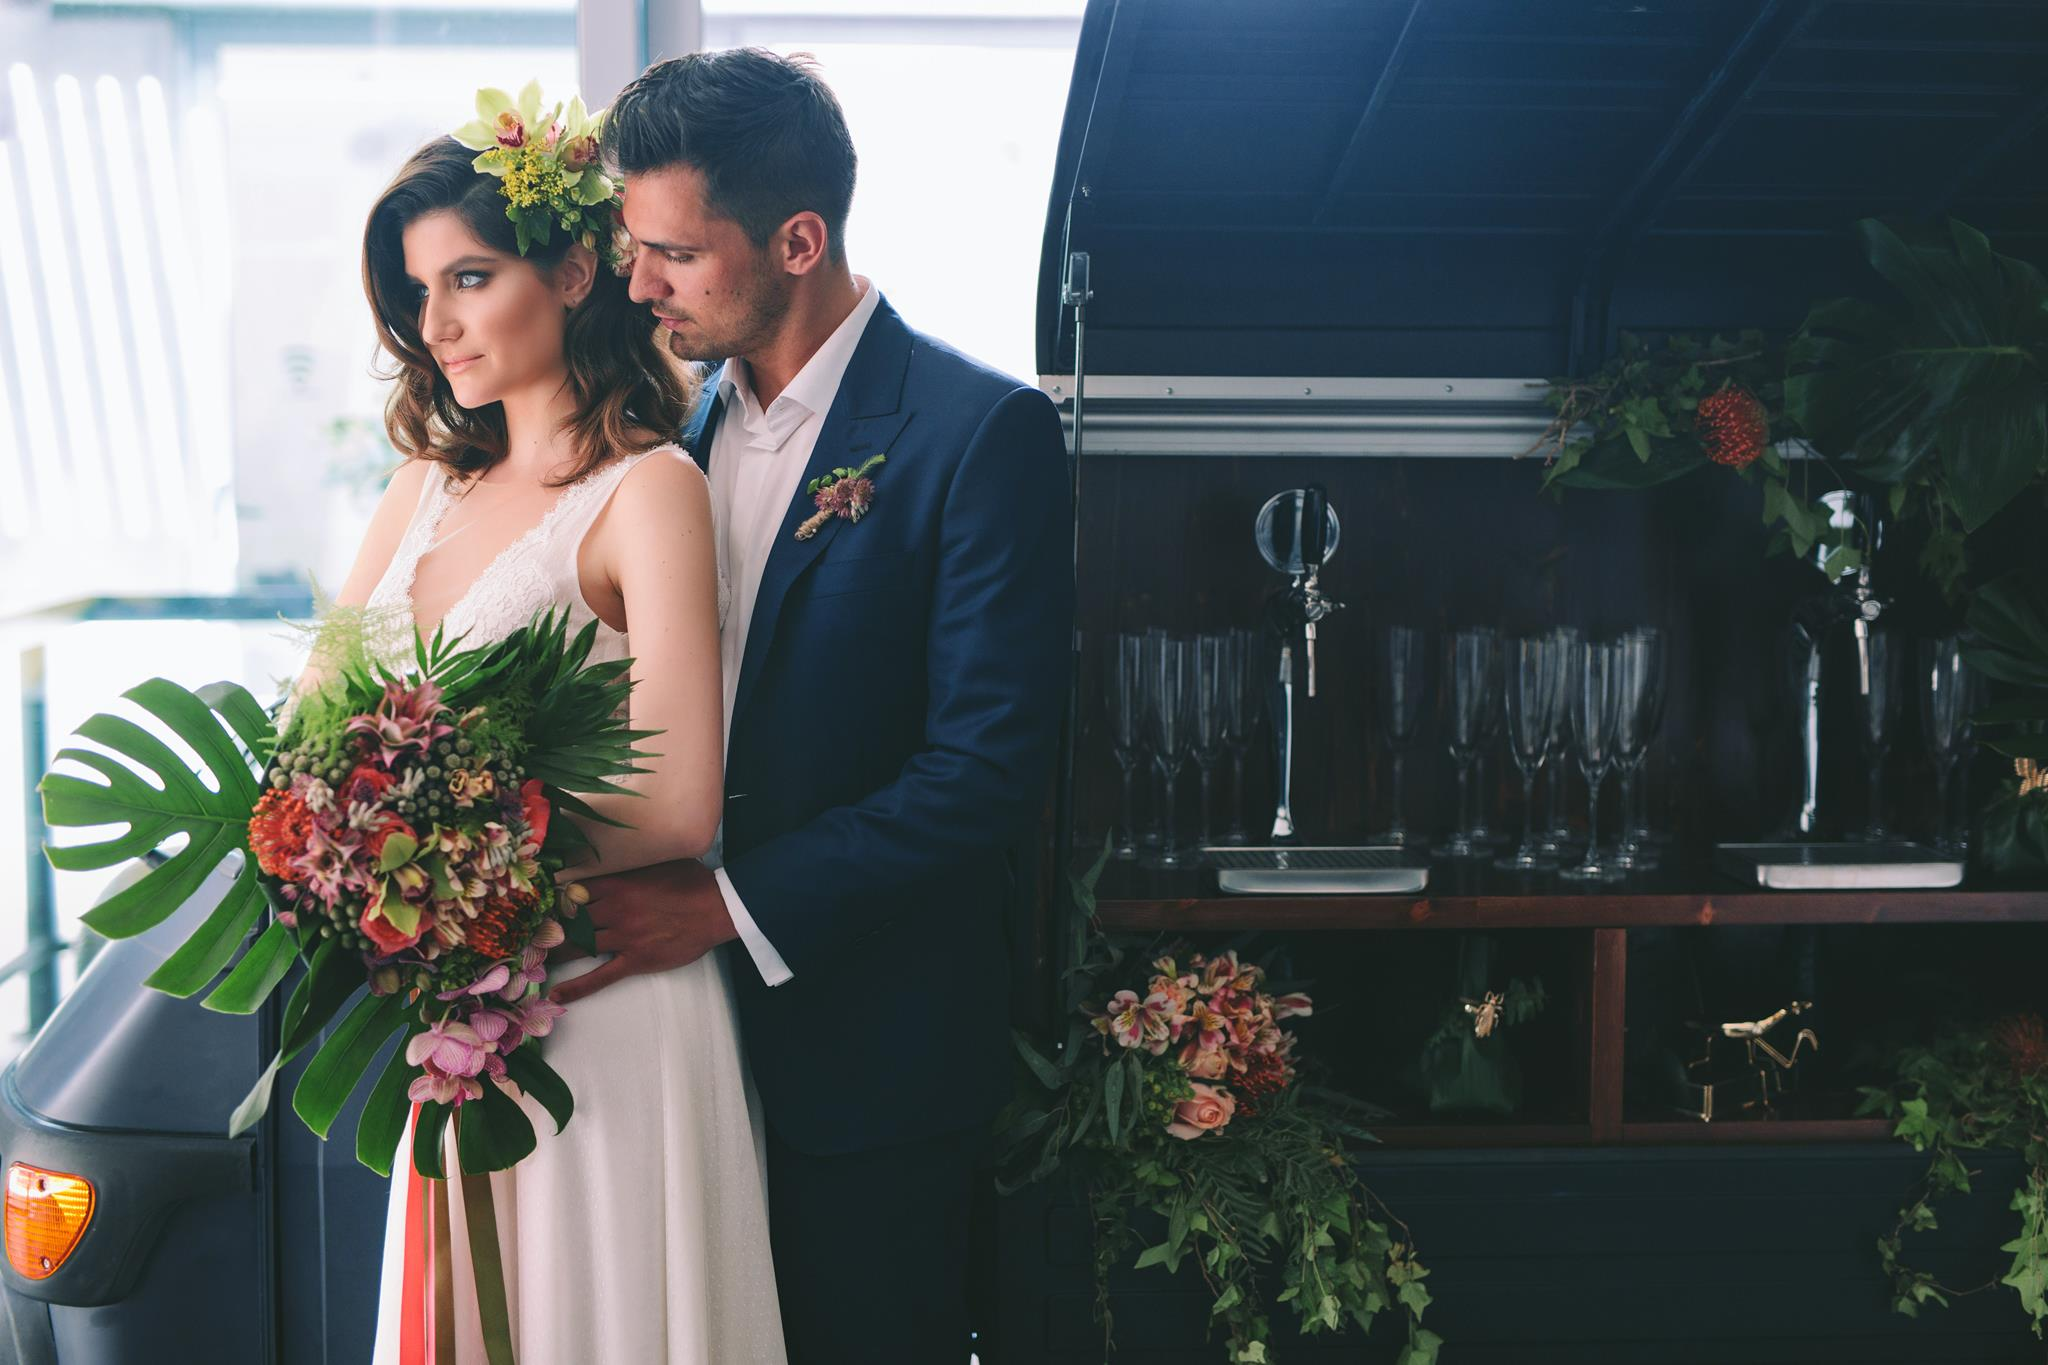 Style Shoots - Elegant Wedding | Broderie Anglaise